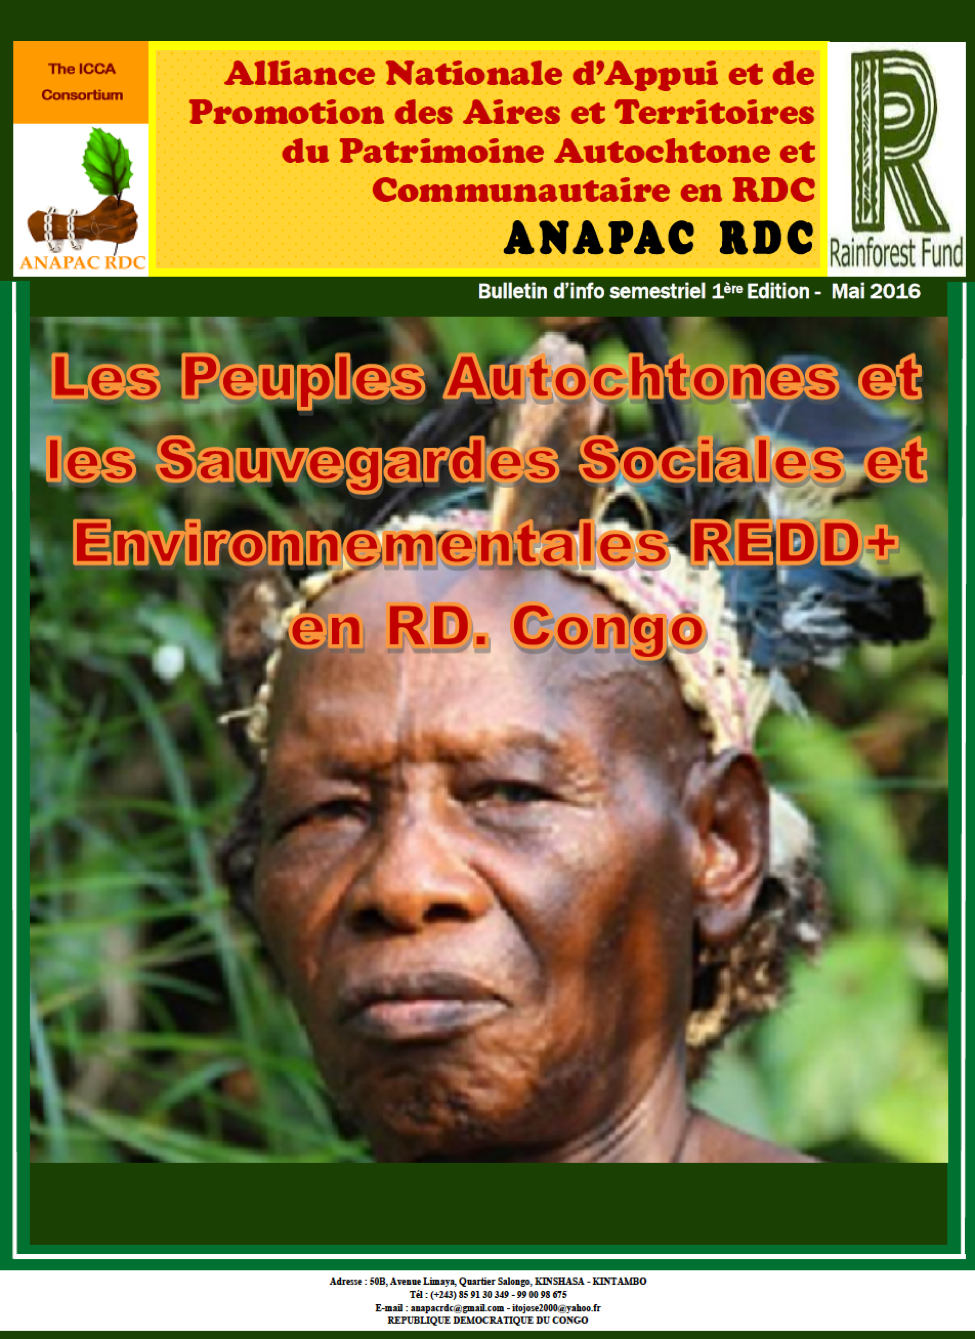 Newsletter from the National Alliance for the Support and Promotion of the ICCAs in Democratic Republic of Congo (ANAPAC) May 2016 Edition